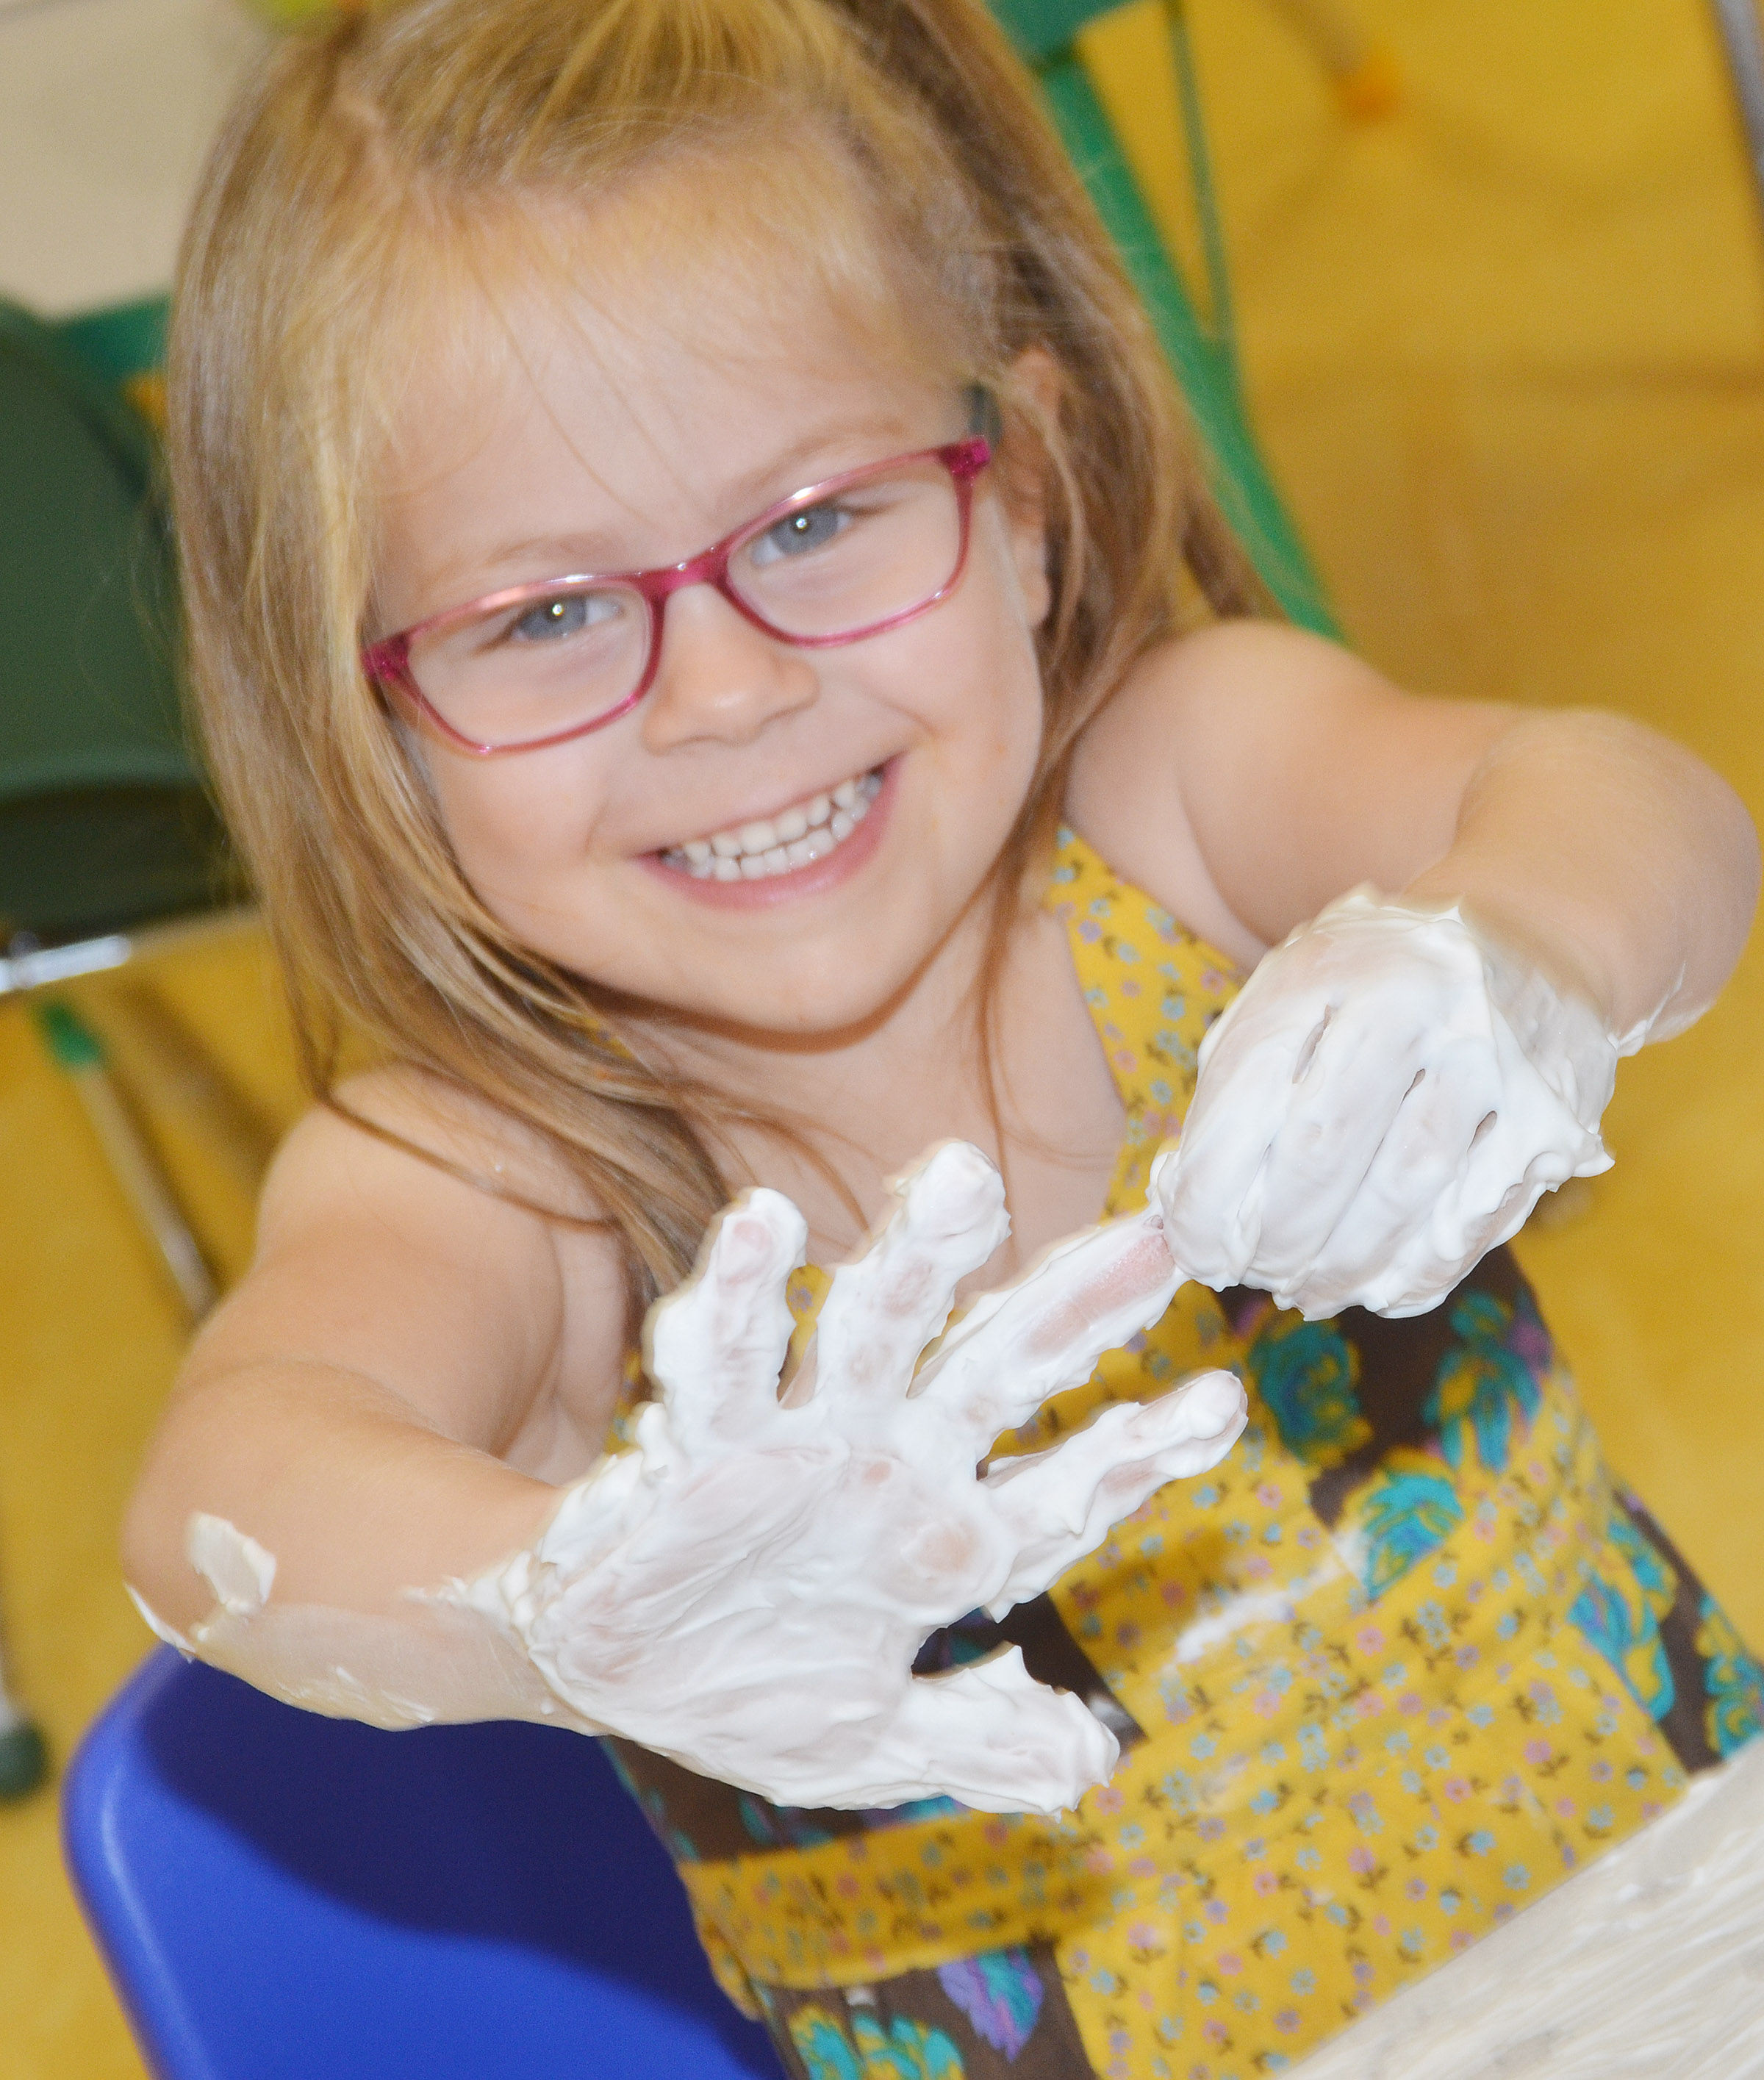 CES preschool student Charlotte Coots smears shaving cream in her hands.